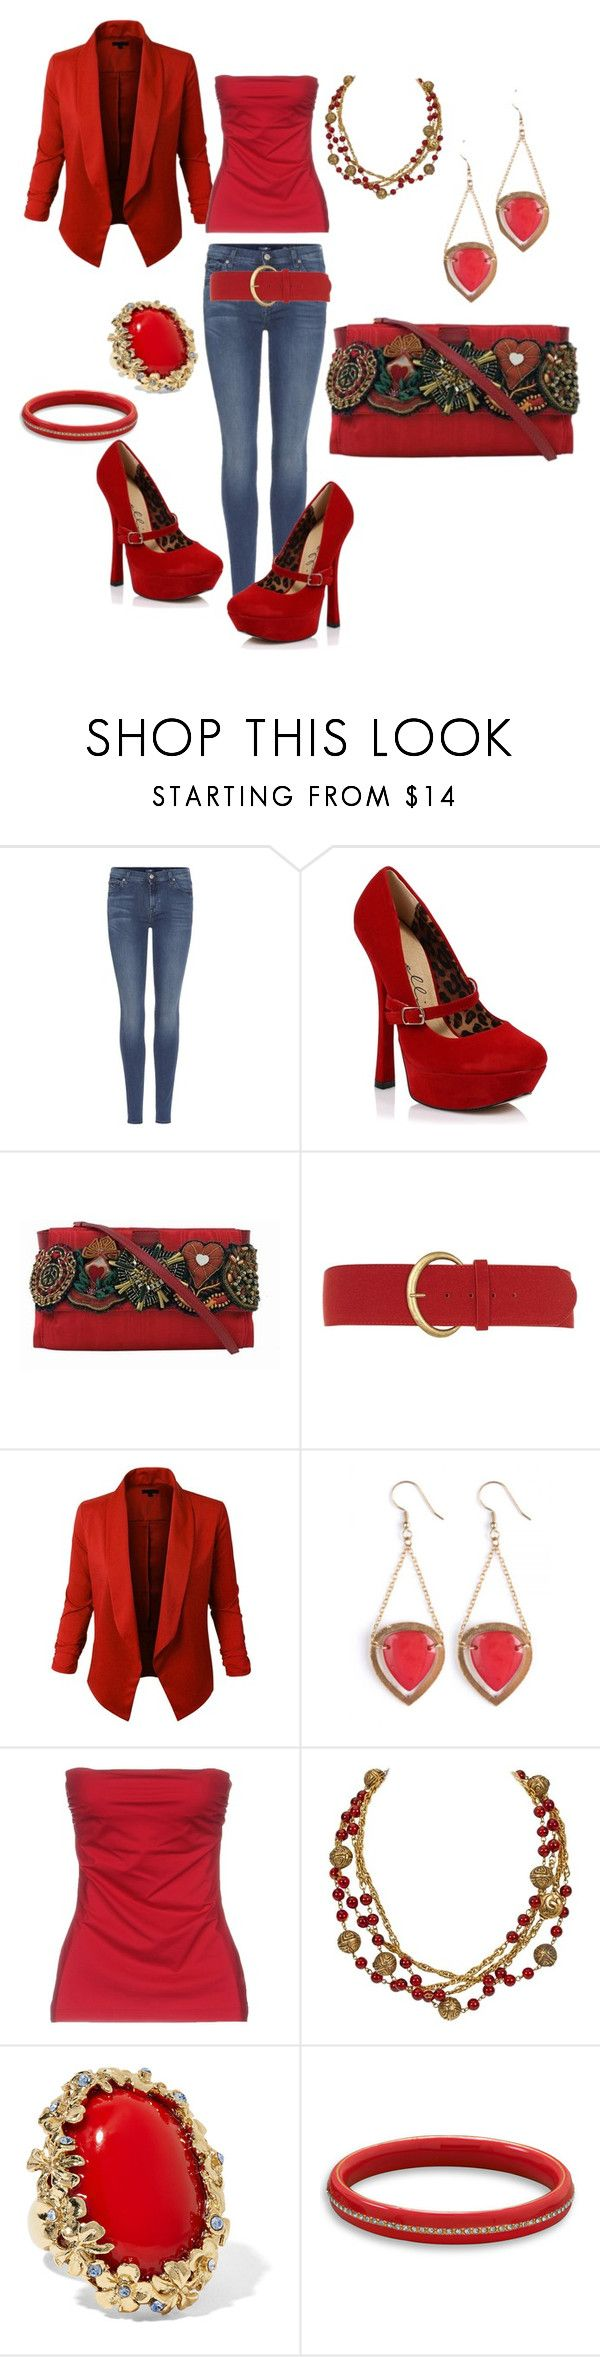 """""""Love you more"""" by lisaaucointarantino ❤ liked on Polyvore featuring 7 For All Mankind, Ellie, Moschino, Dorothy Perkins, LE3NO, Pianurastudio, Chanel, Oscar de la Renta and BillyTheTree"""